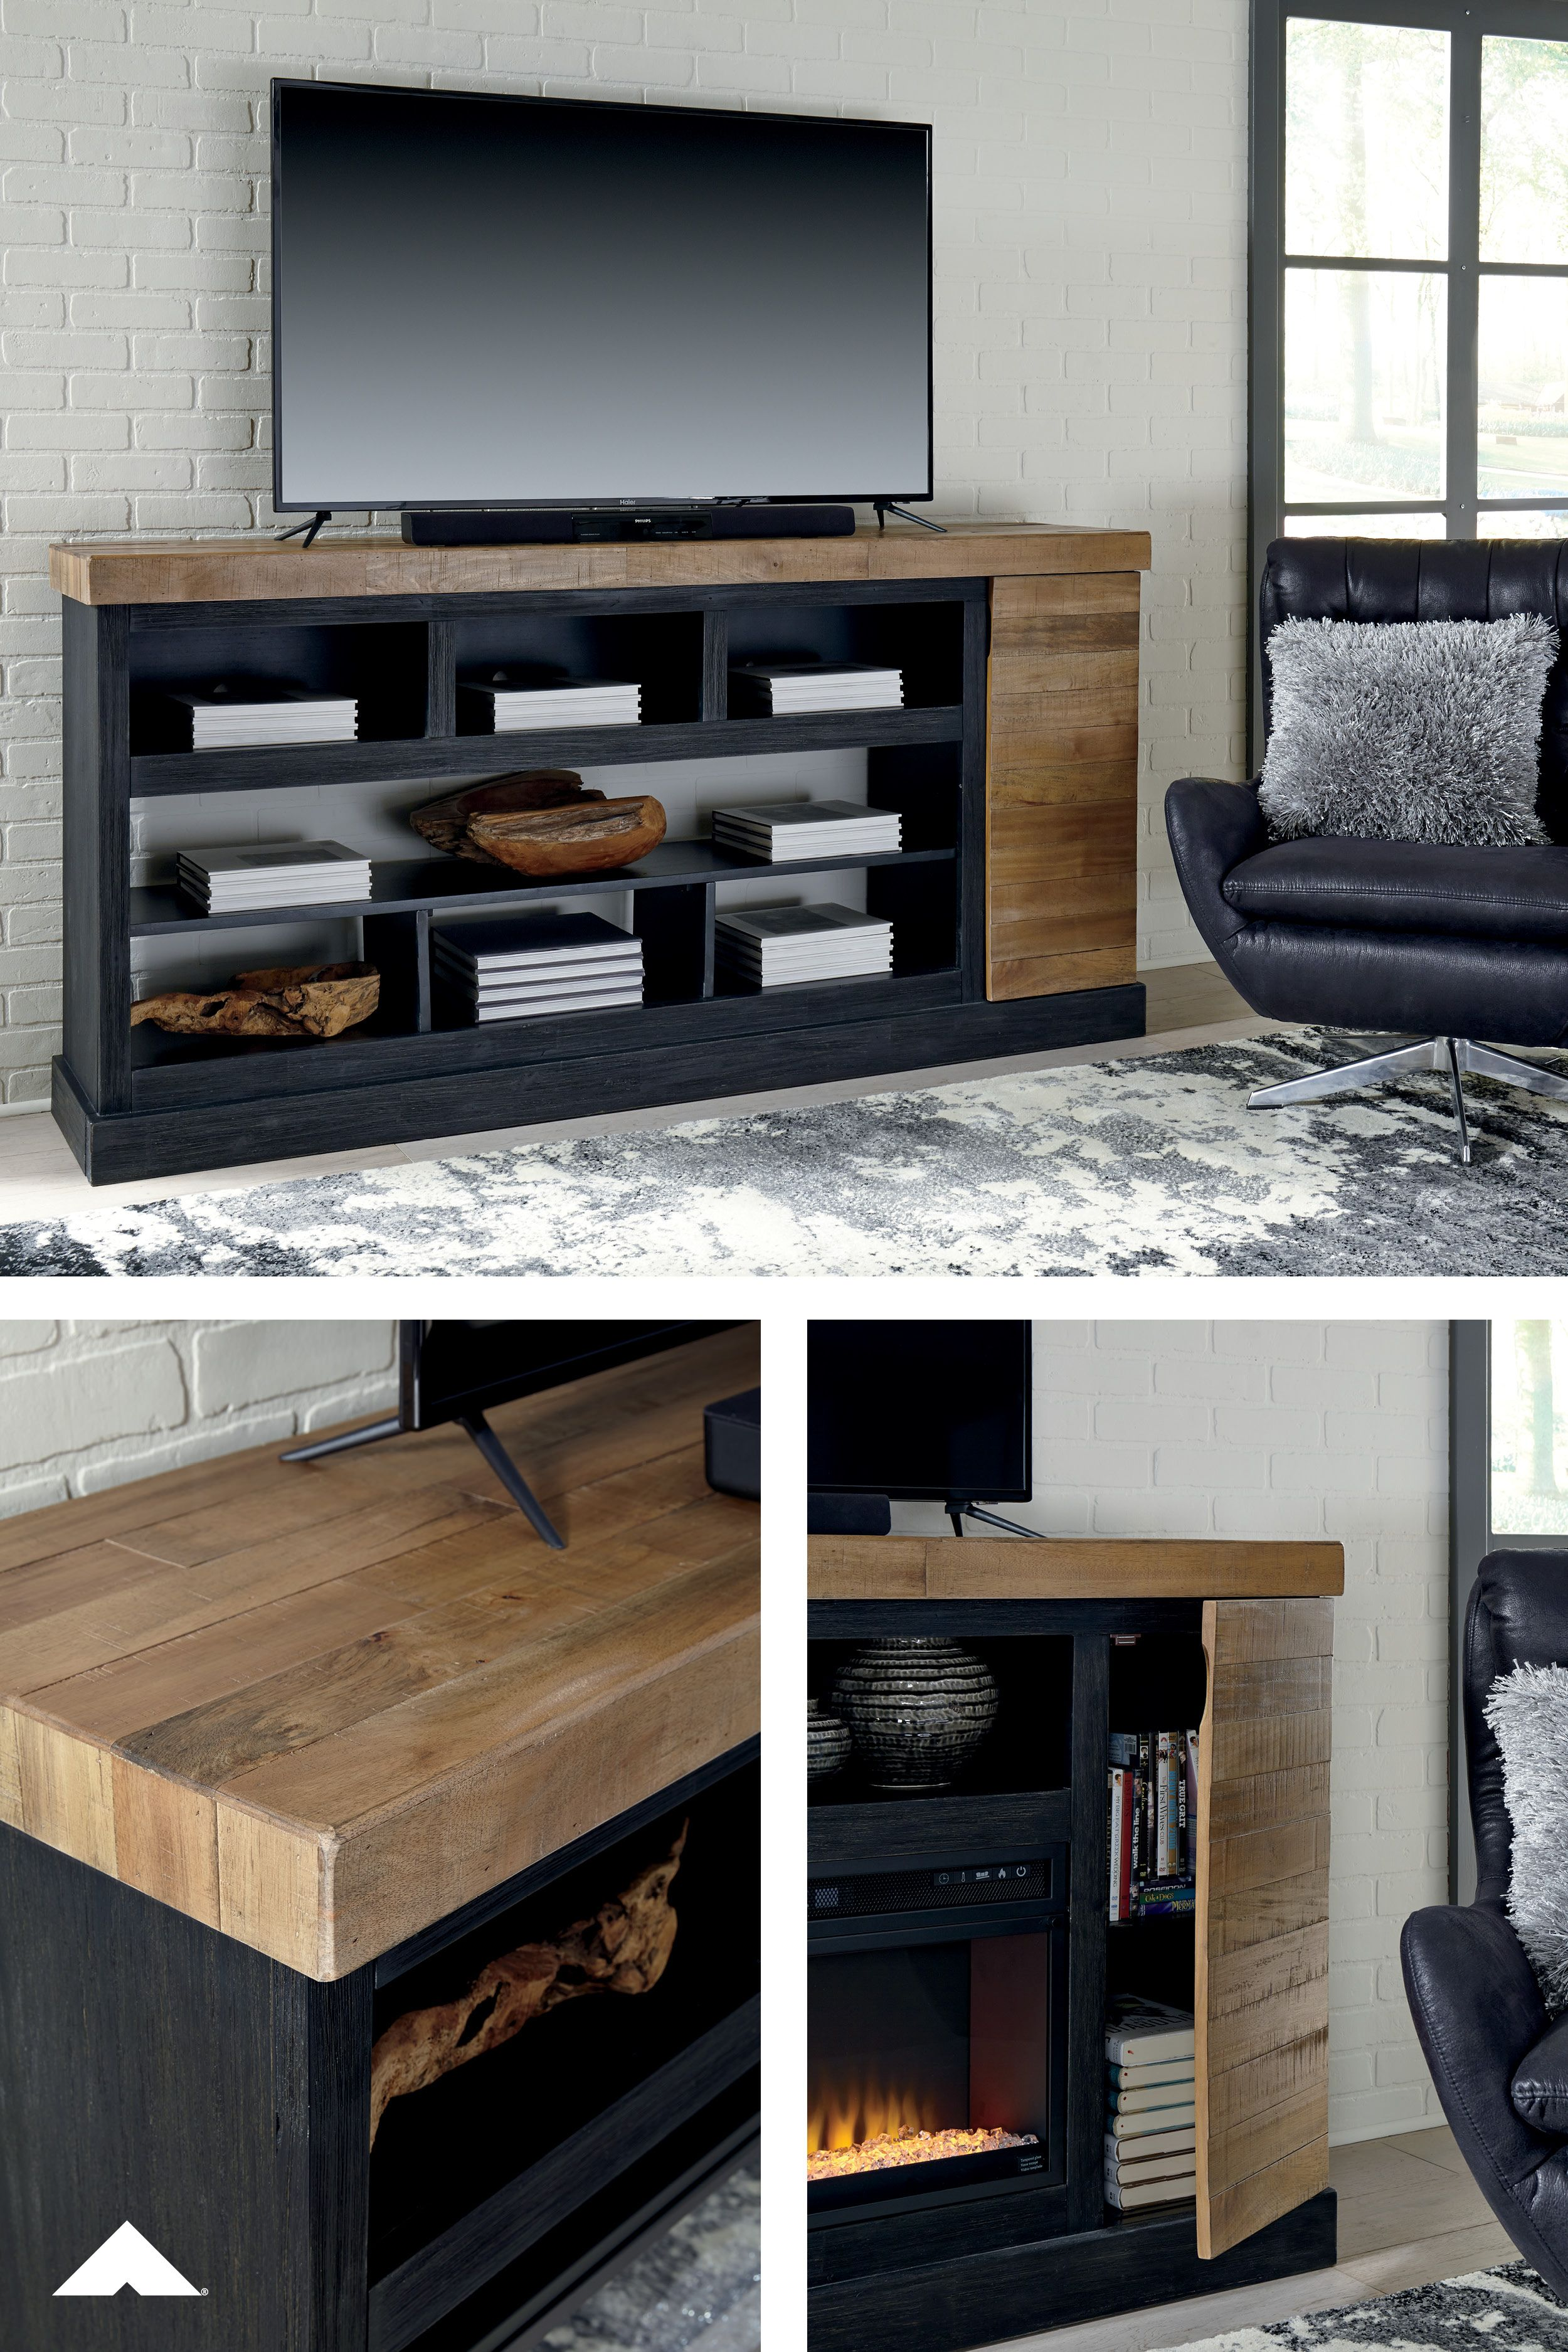 Tonnari Two Tone Brown Xl Tv Stand W Fireplace Option By Ashley